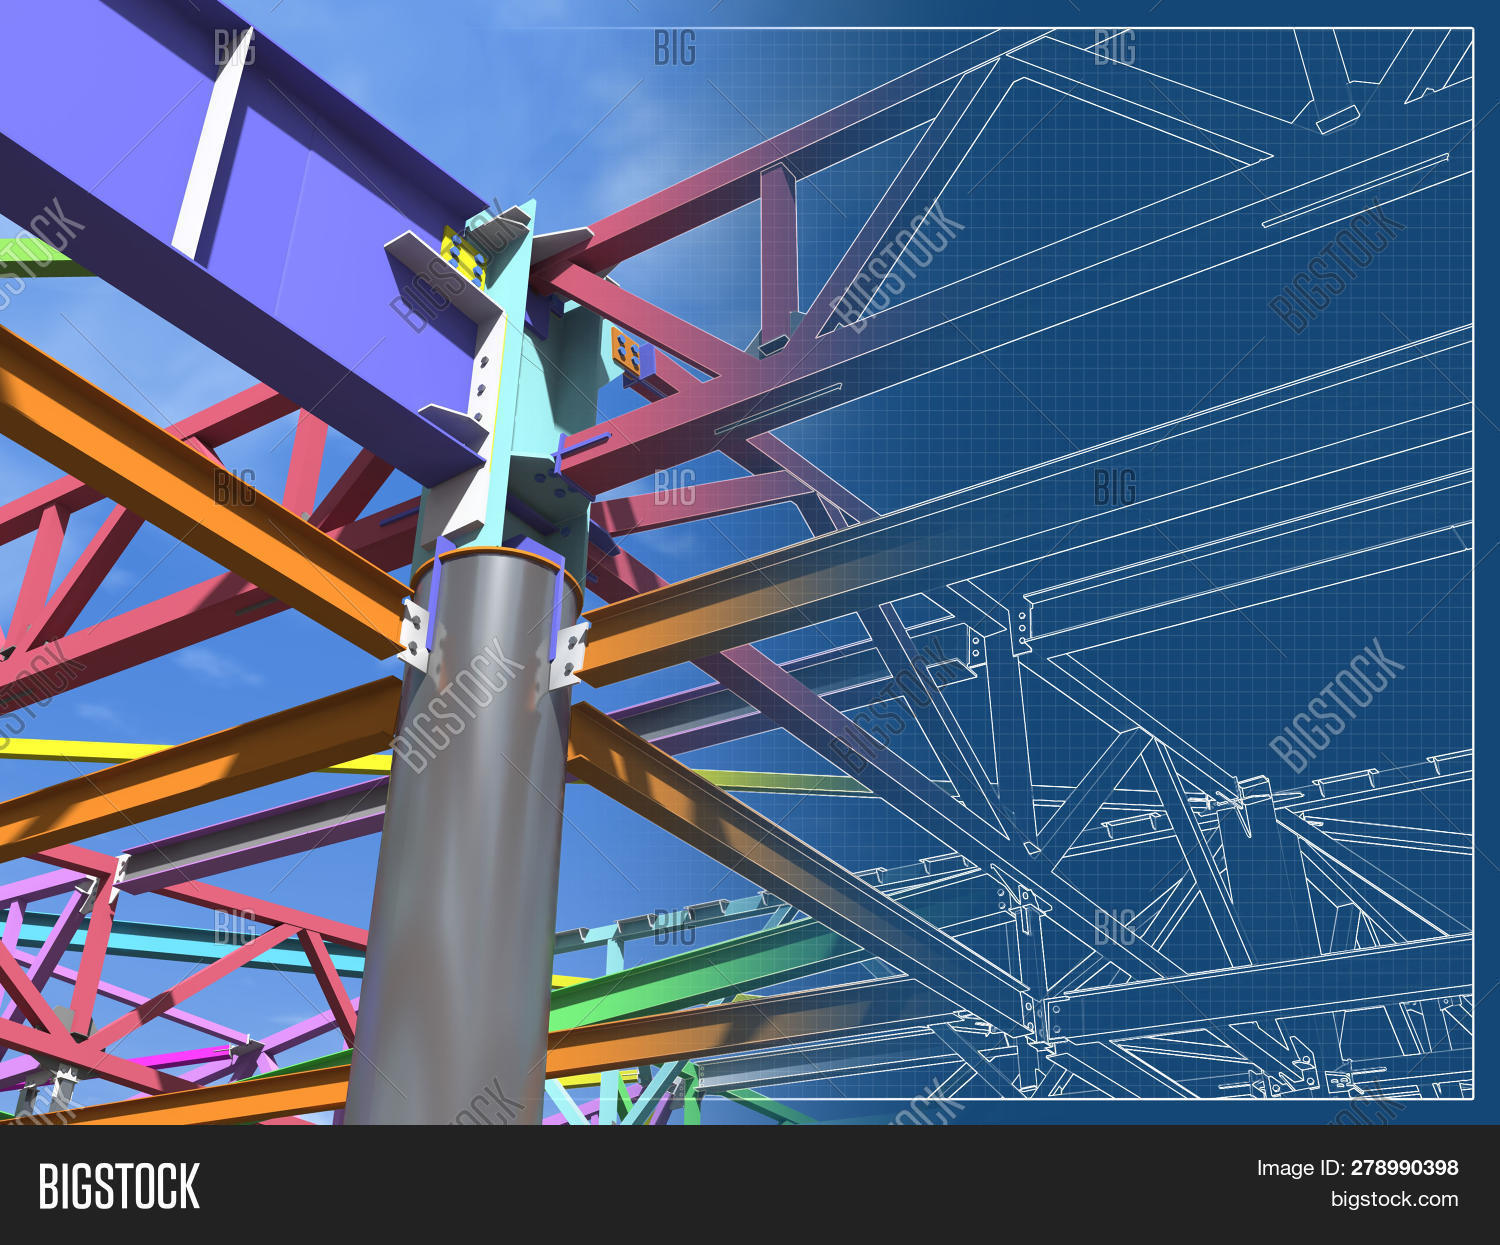 3d,BIM,architecture,background,beam,blueprint,bolt,brown,builder,building,channel,city,columns,construction,down,drawing,energy,engineer,engineering,exterior,factory,frame,framework,gas,industrial,industry,ladder,material,metal,model,modern,nature,pattern,pipe,plant,project,render,shiny,site,sky,staircase,steel,structure,technology,tower,urban,view,wire